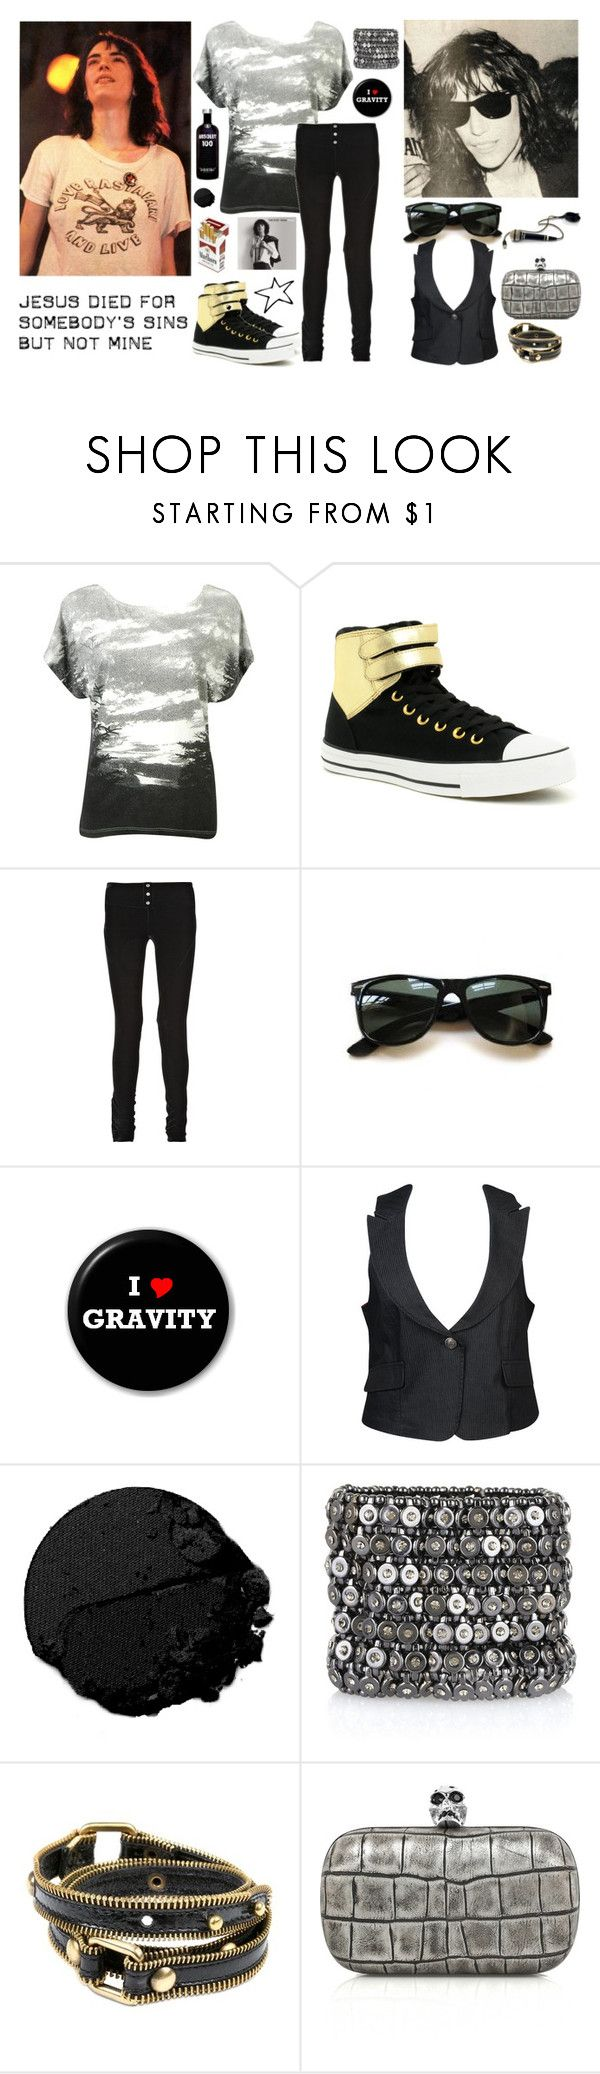 """""""""""Gloria"""" Patti Smith - 70's Singers Contest!"""" by miss-kubelik ❤ liked on Polyvore featuring Forever 21, Converse, Elizabeth and James, Ray-Ban, LIST, Lancôme, Kenneth Jay Lane, Jo No Fui and Alexander McQueen"""